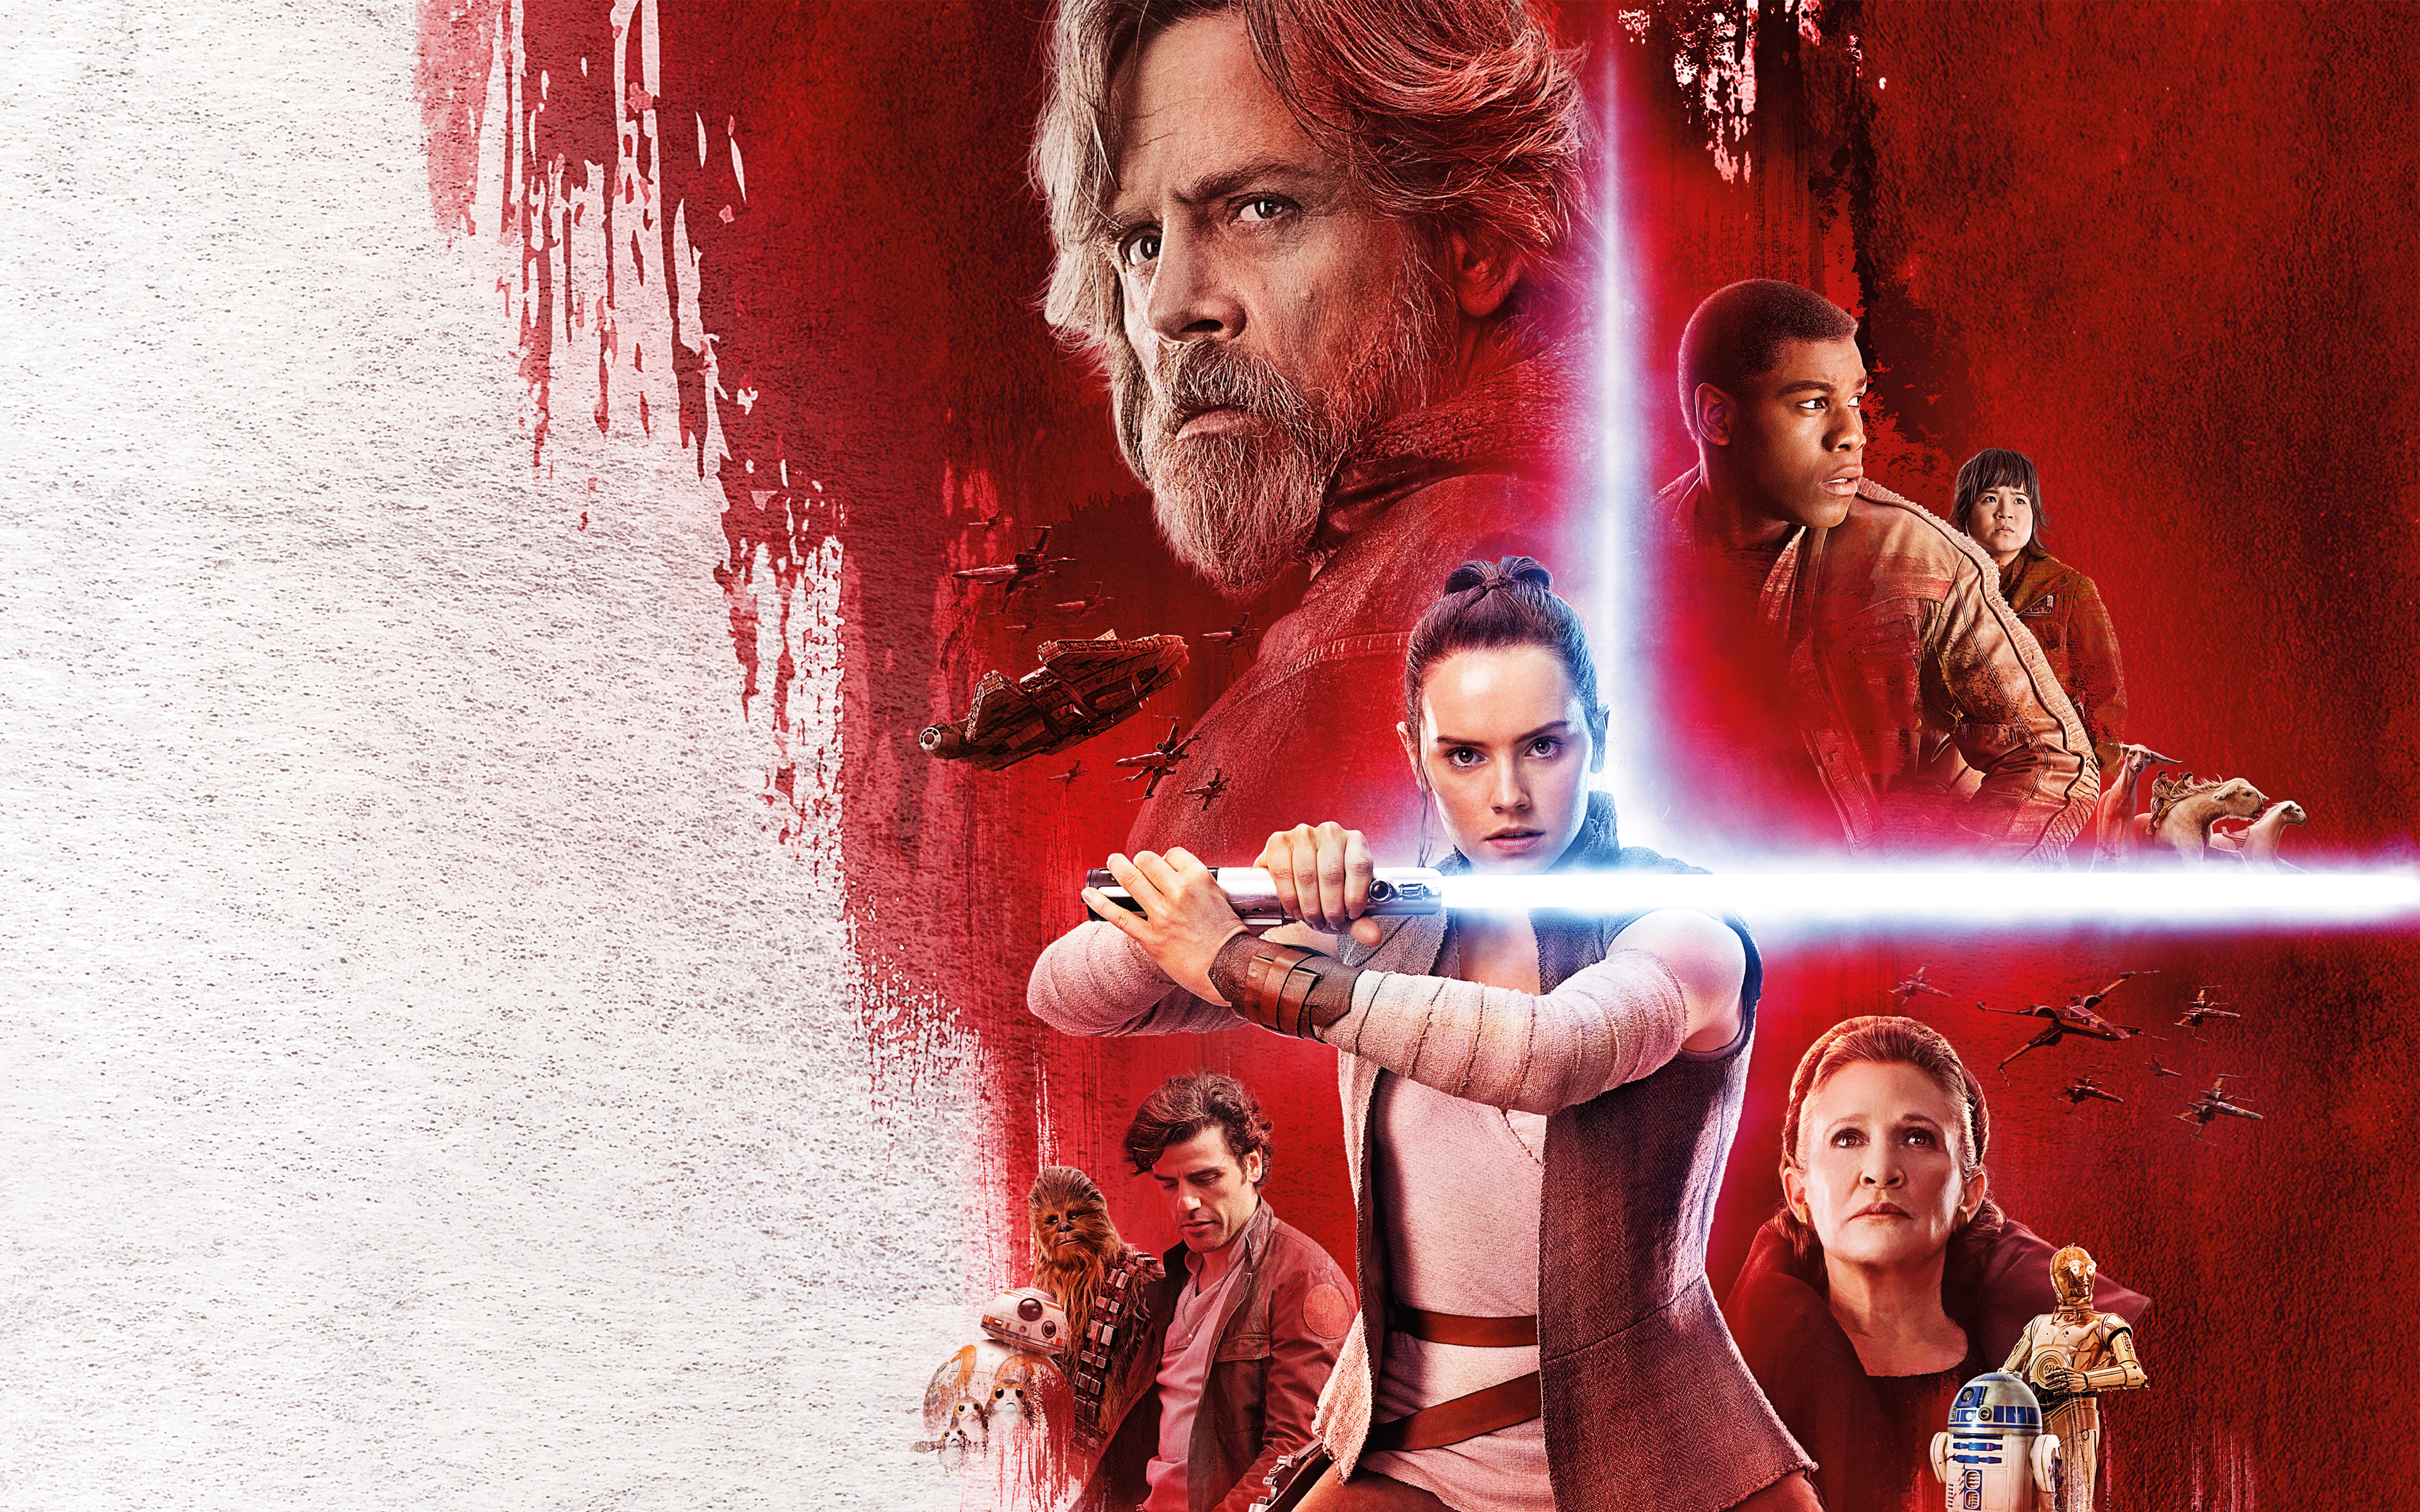 Star Wars 8 Poster Wallpaper Hd Movies 4k Wallpapers Images Photos And Background